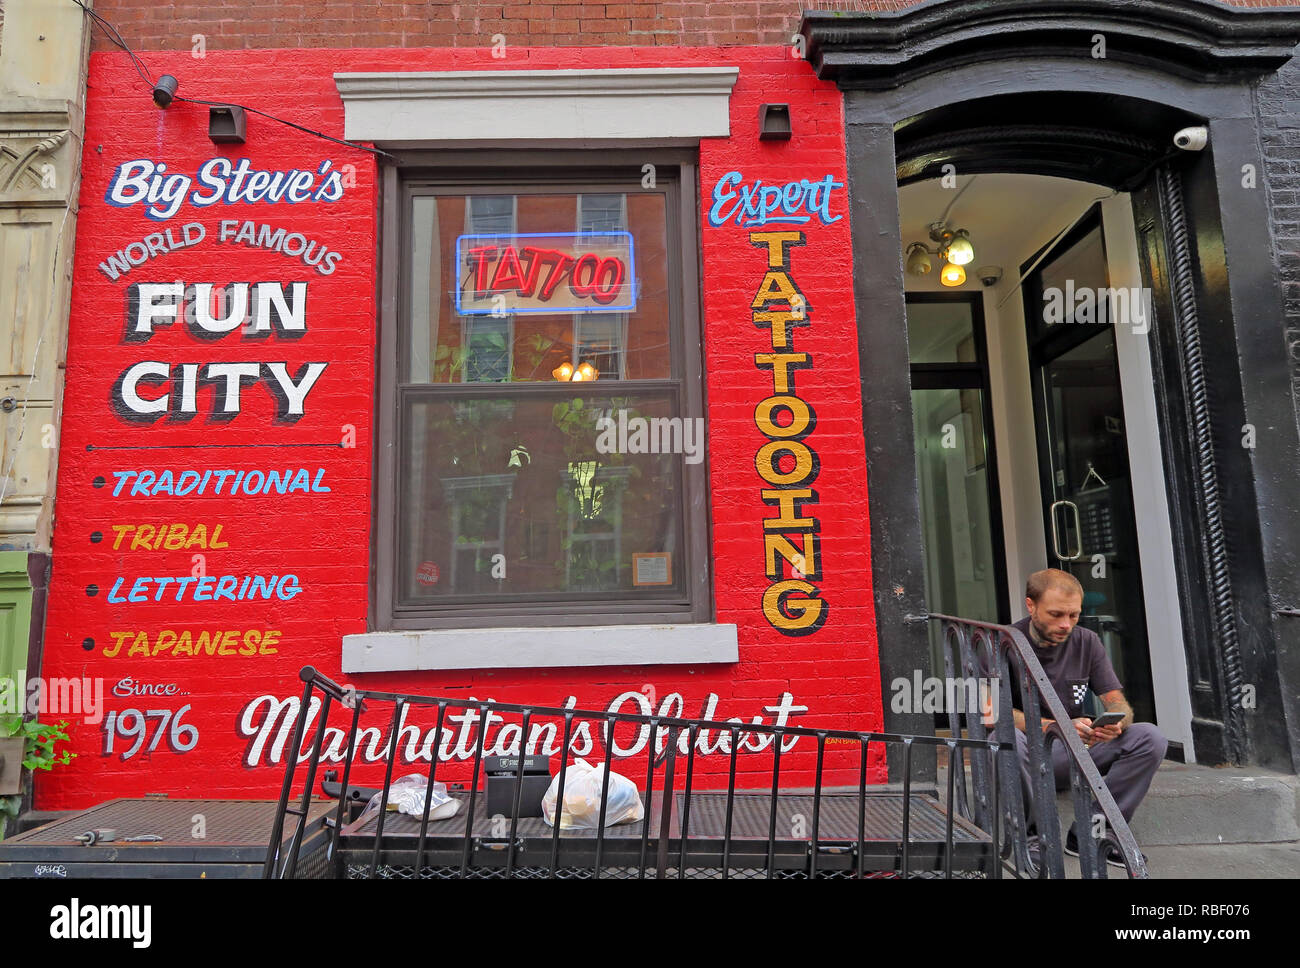 Big Steves, Famous Fun City, expert Tattooing,tattooist, 94 St Marks Pace, East Village, Manhattan, New York, NY, USA - Stock Image